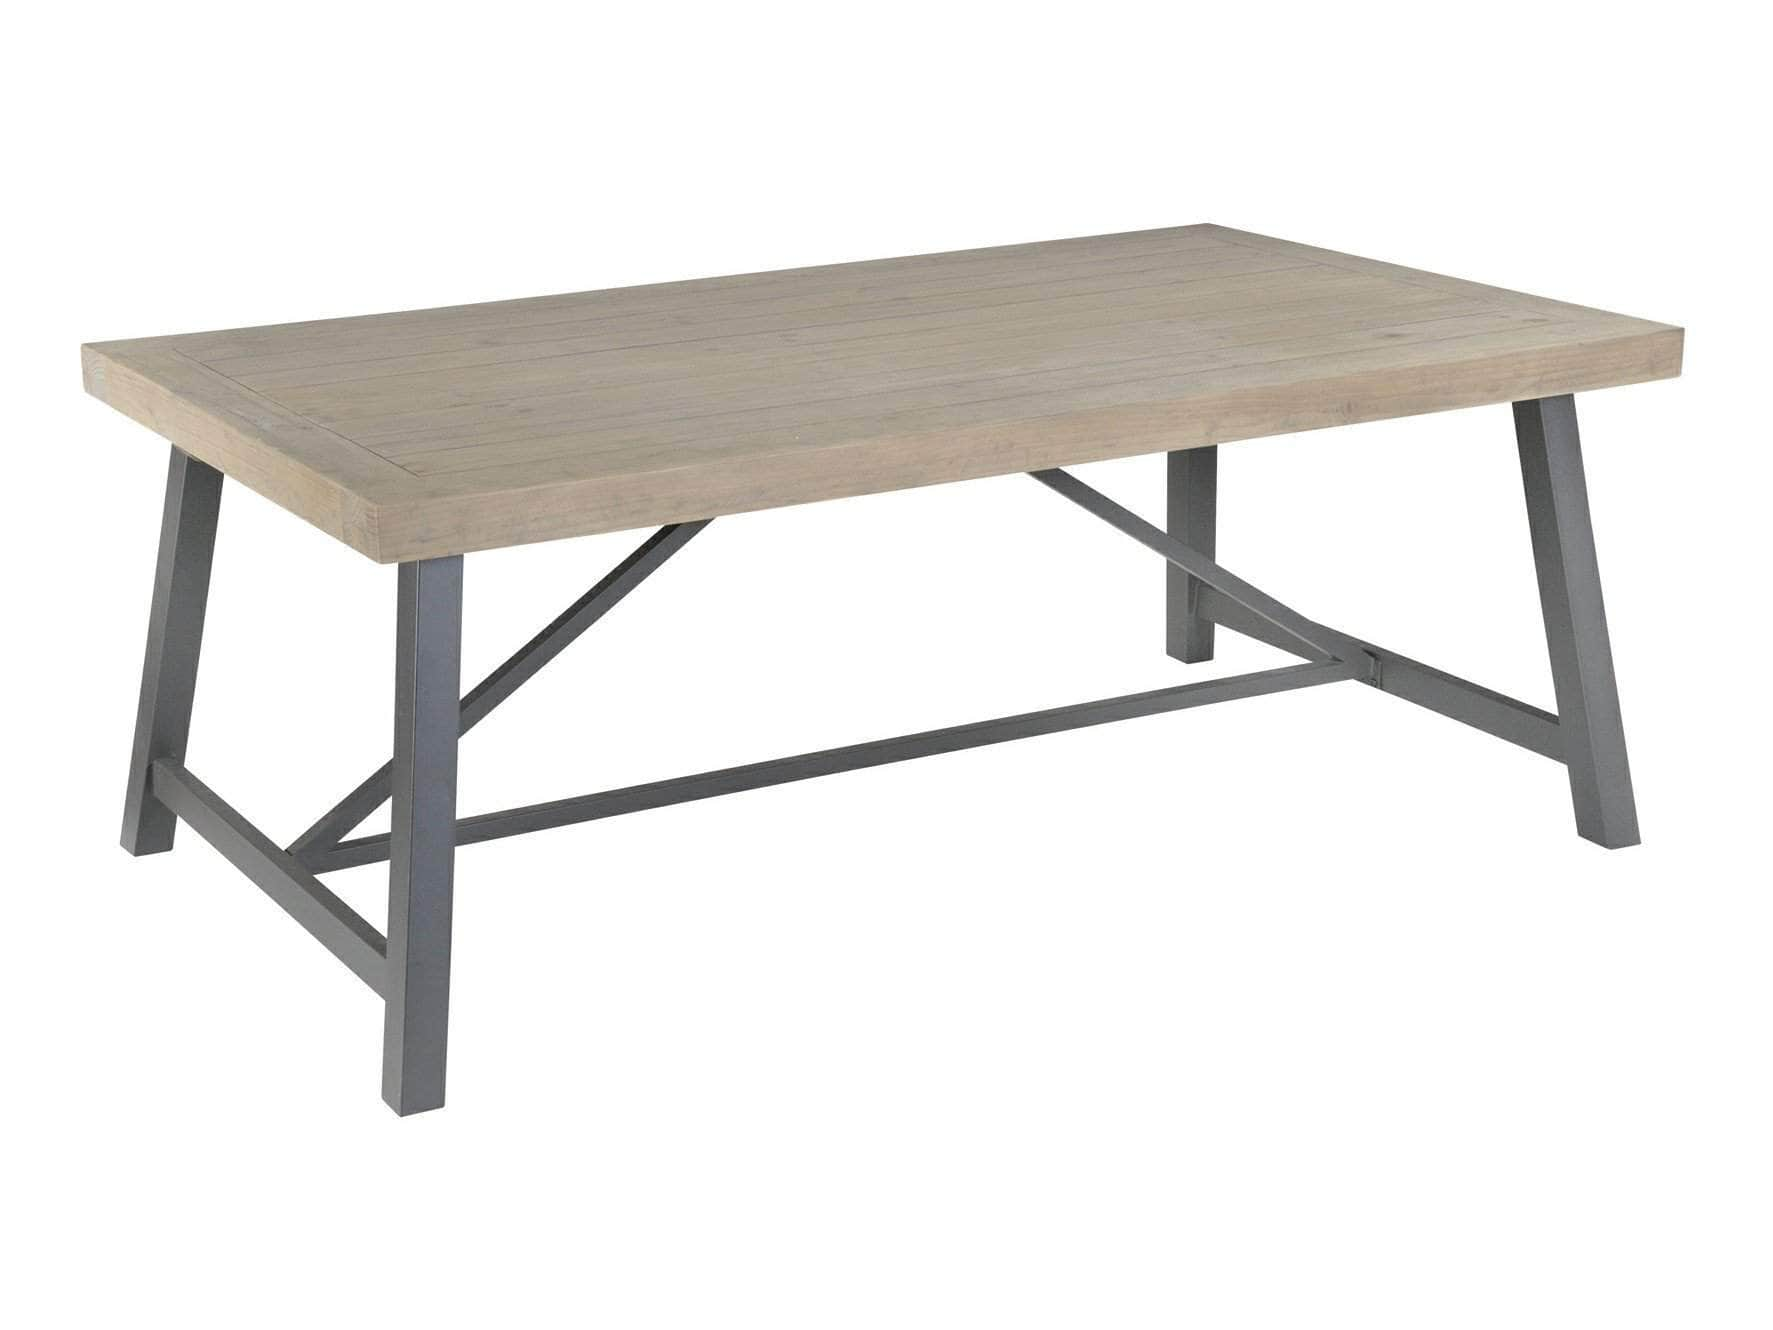 Large extending dining table in an industrial style design